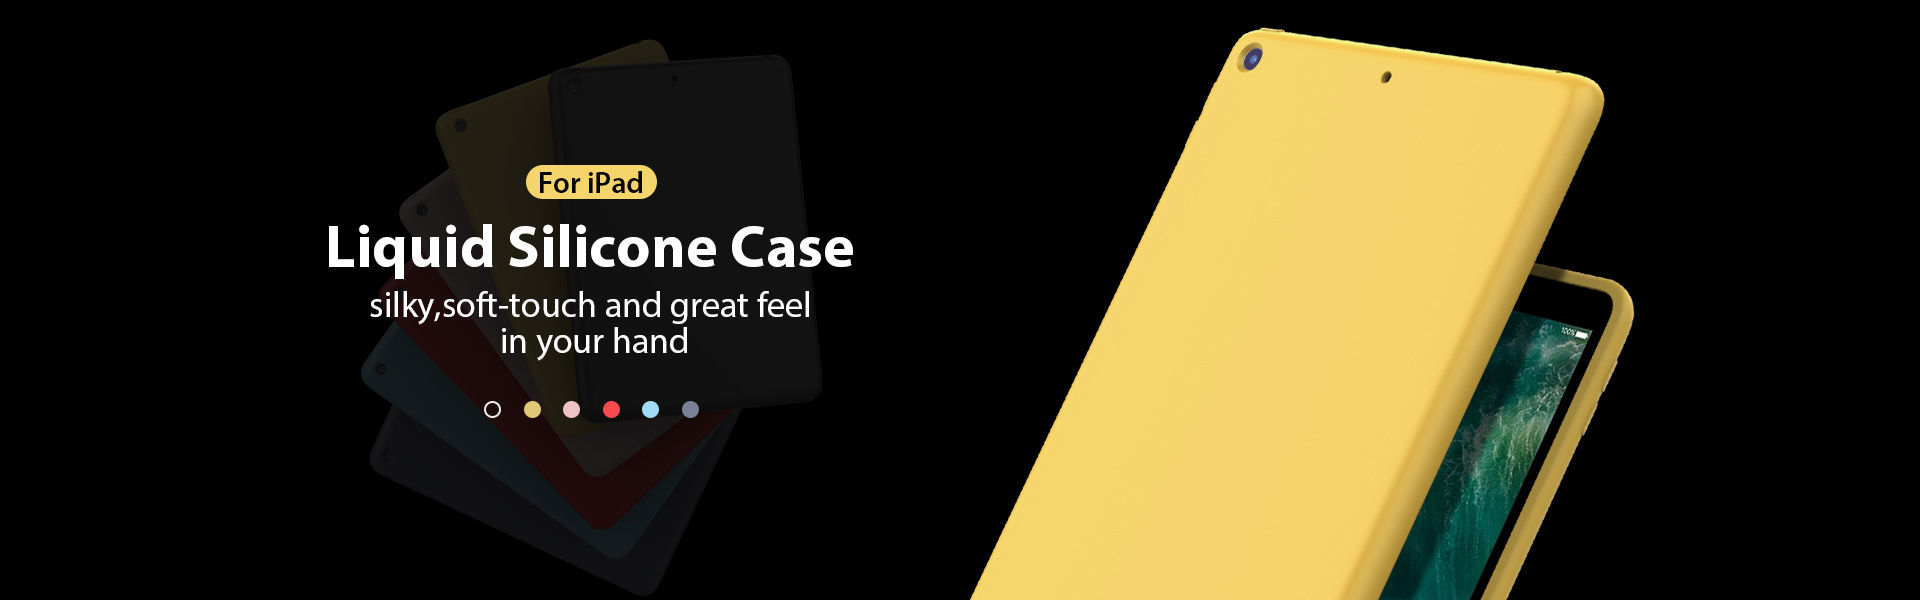 Liquid silicone case for ipad